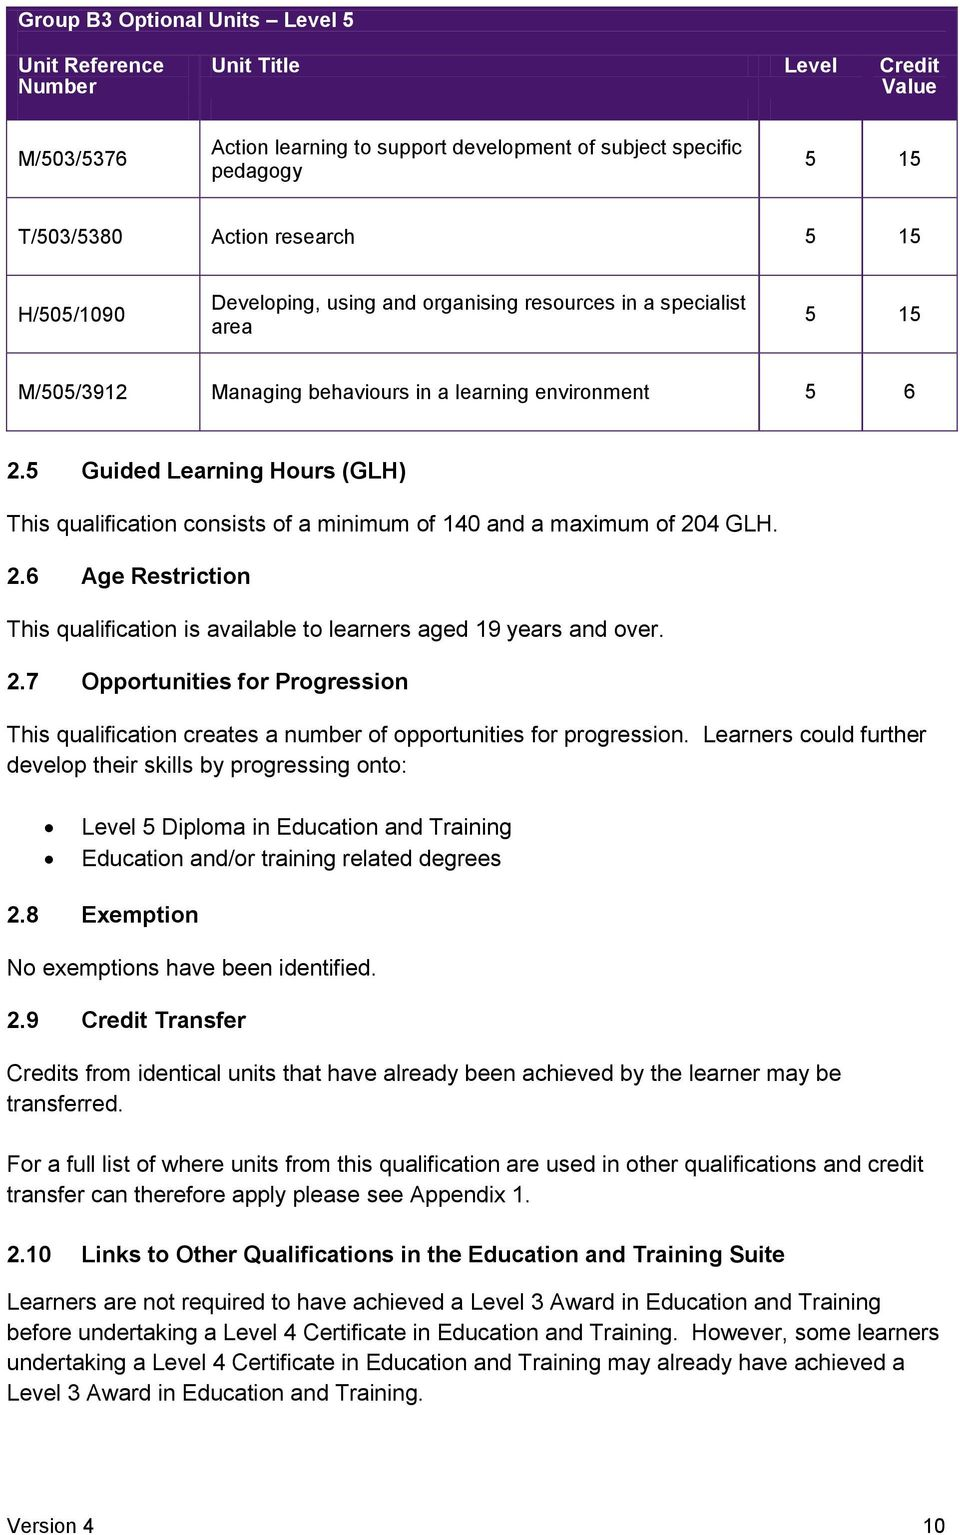 5 Guided Learning Hours (GLH) This qualification consists of a minimum of 140 and a maximum of 204 GLH. 2.6 Age Restriction This qualification is available to learners aged 19 years and over. 2.7 Opportunities for Progression This qualification creates a number of opportunities for progression.